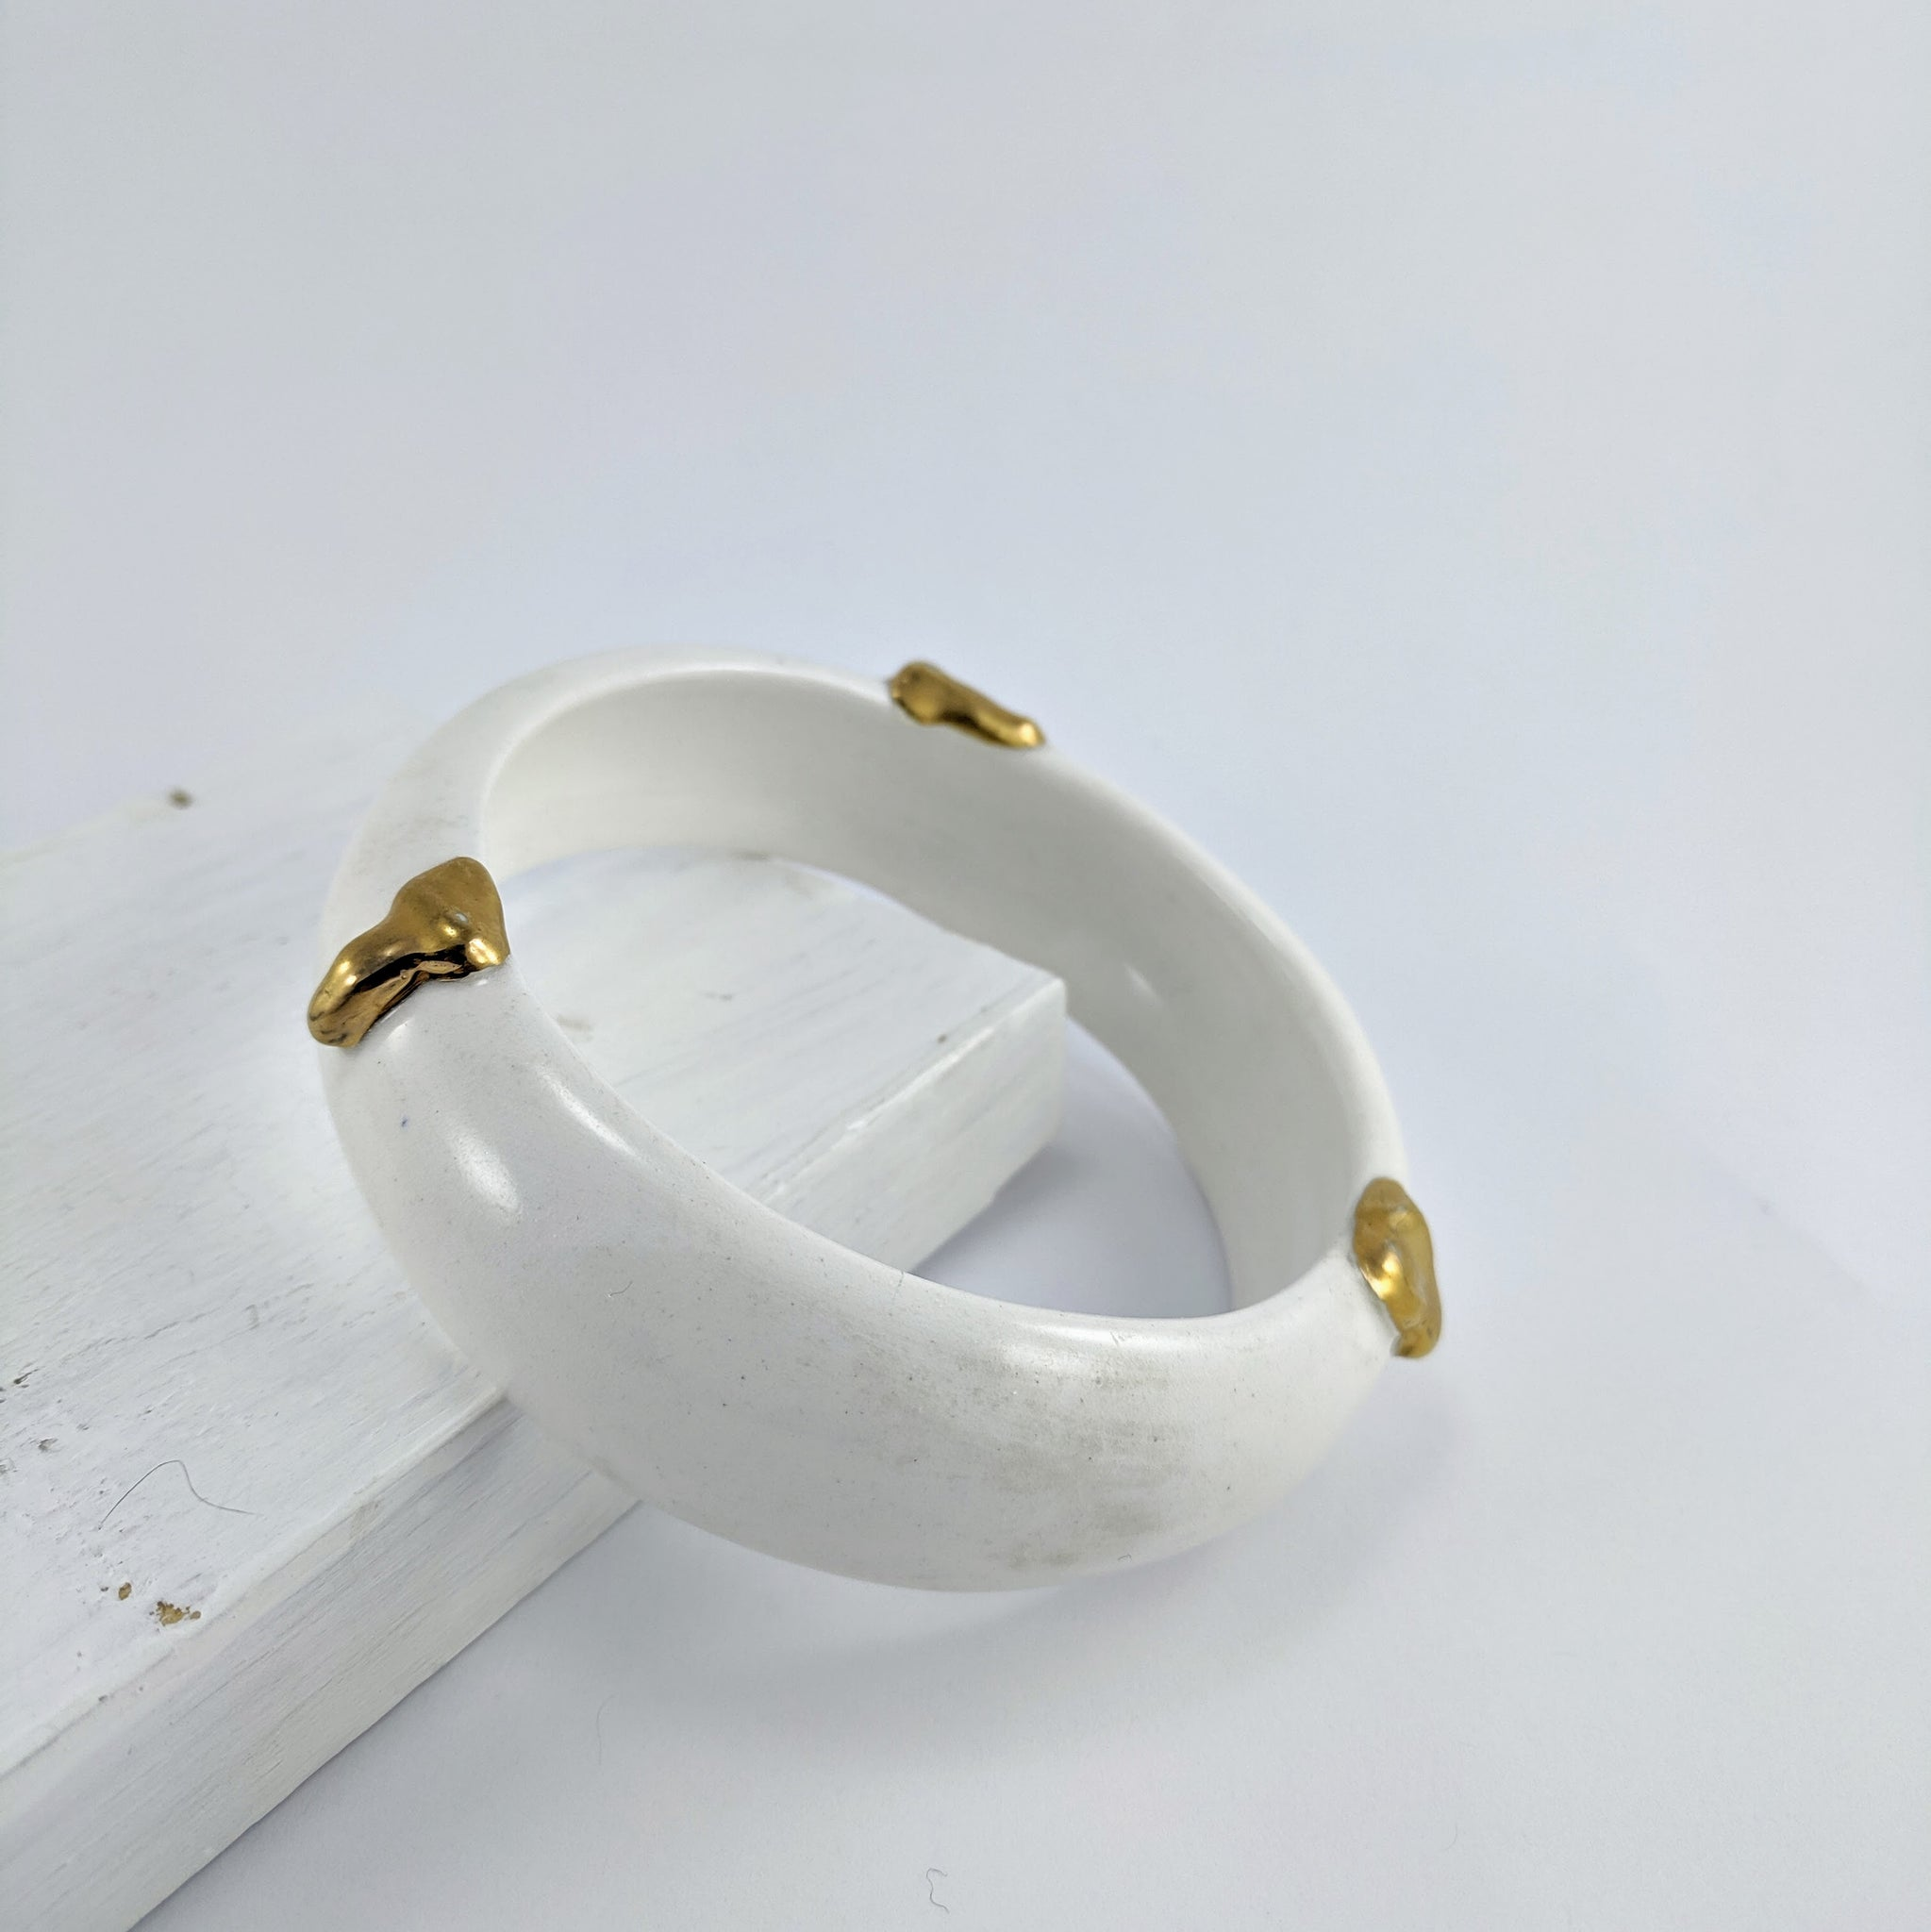 Unique jewellery handmade in New Zealand by Marita Green. White porcelain bangle with a smooth shiny finish and thick gold foil dripping down the bangle's side on the outer surface